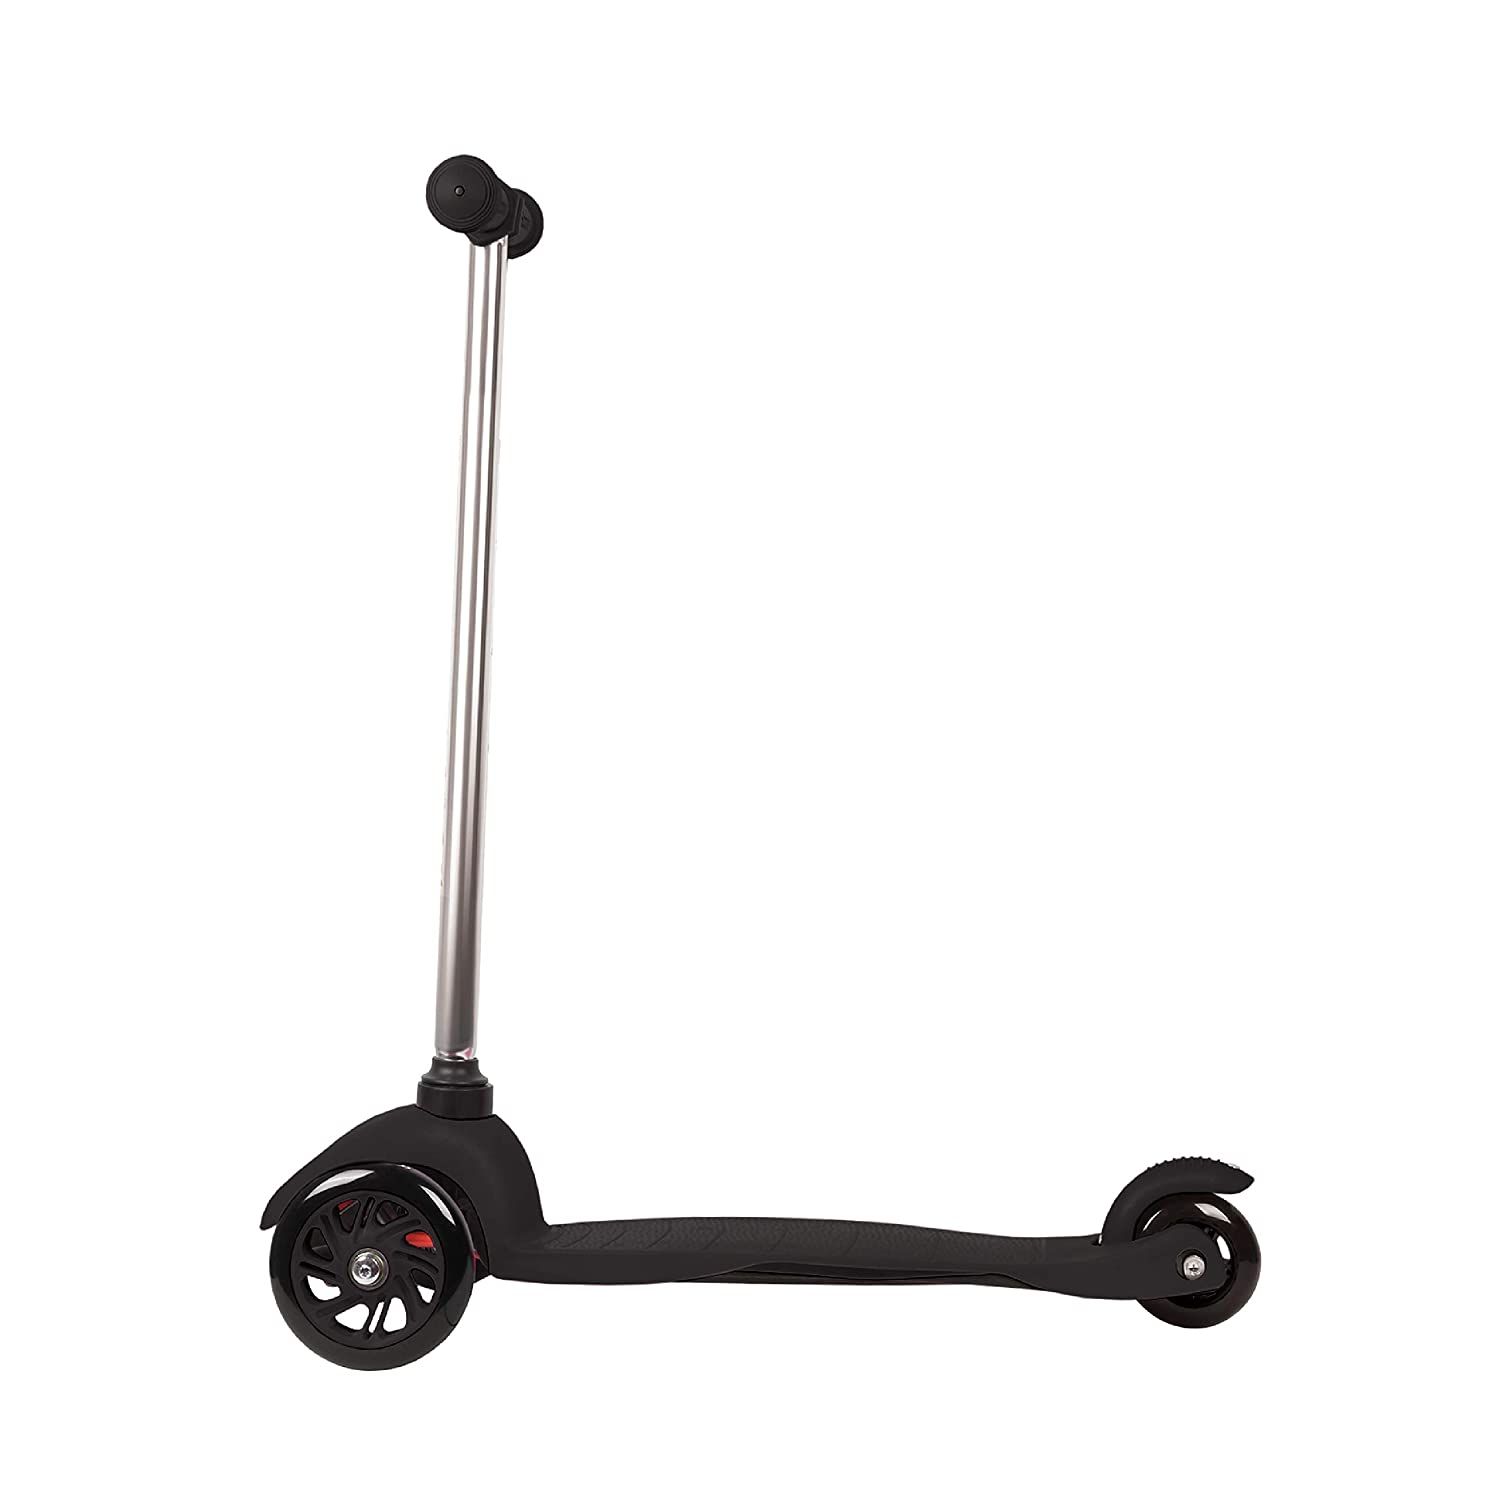 Rugged Racers Black Kick Scooter for Boys & Girls 3 Wheel Scooter, Kick Scooter for Kids with PU Wheels, Step Brake, Lean 2 Turn, Ride on Toys for ...